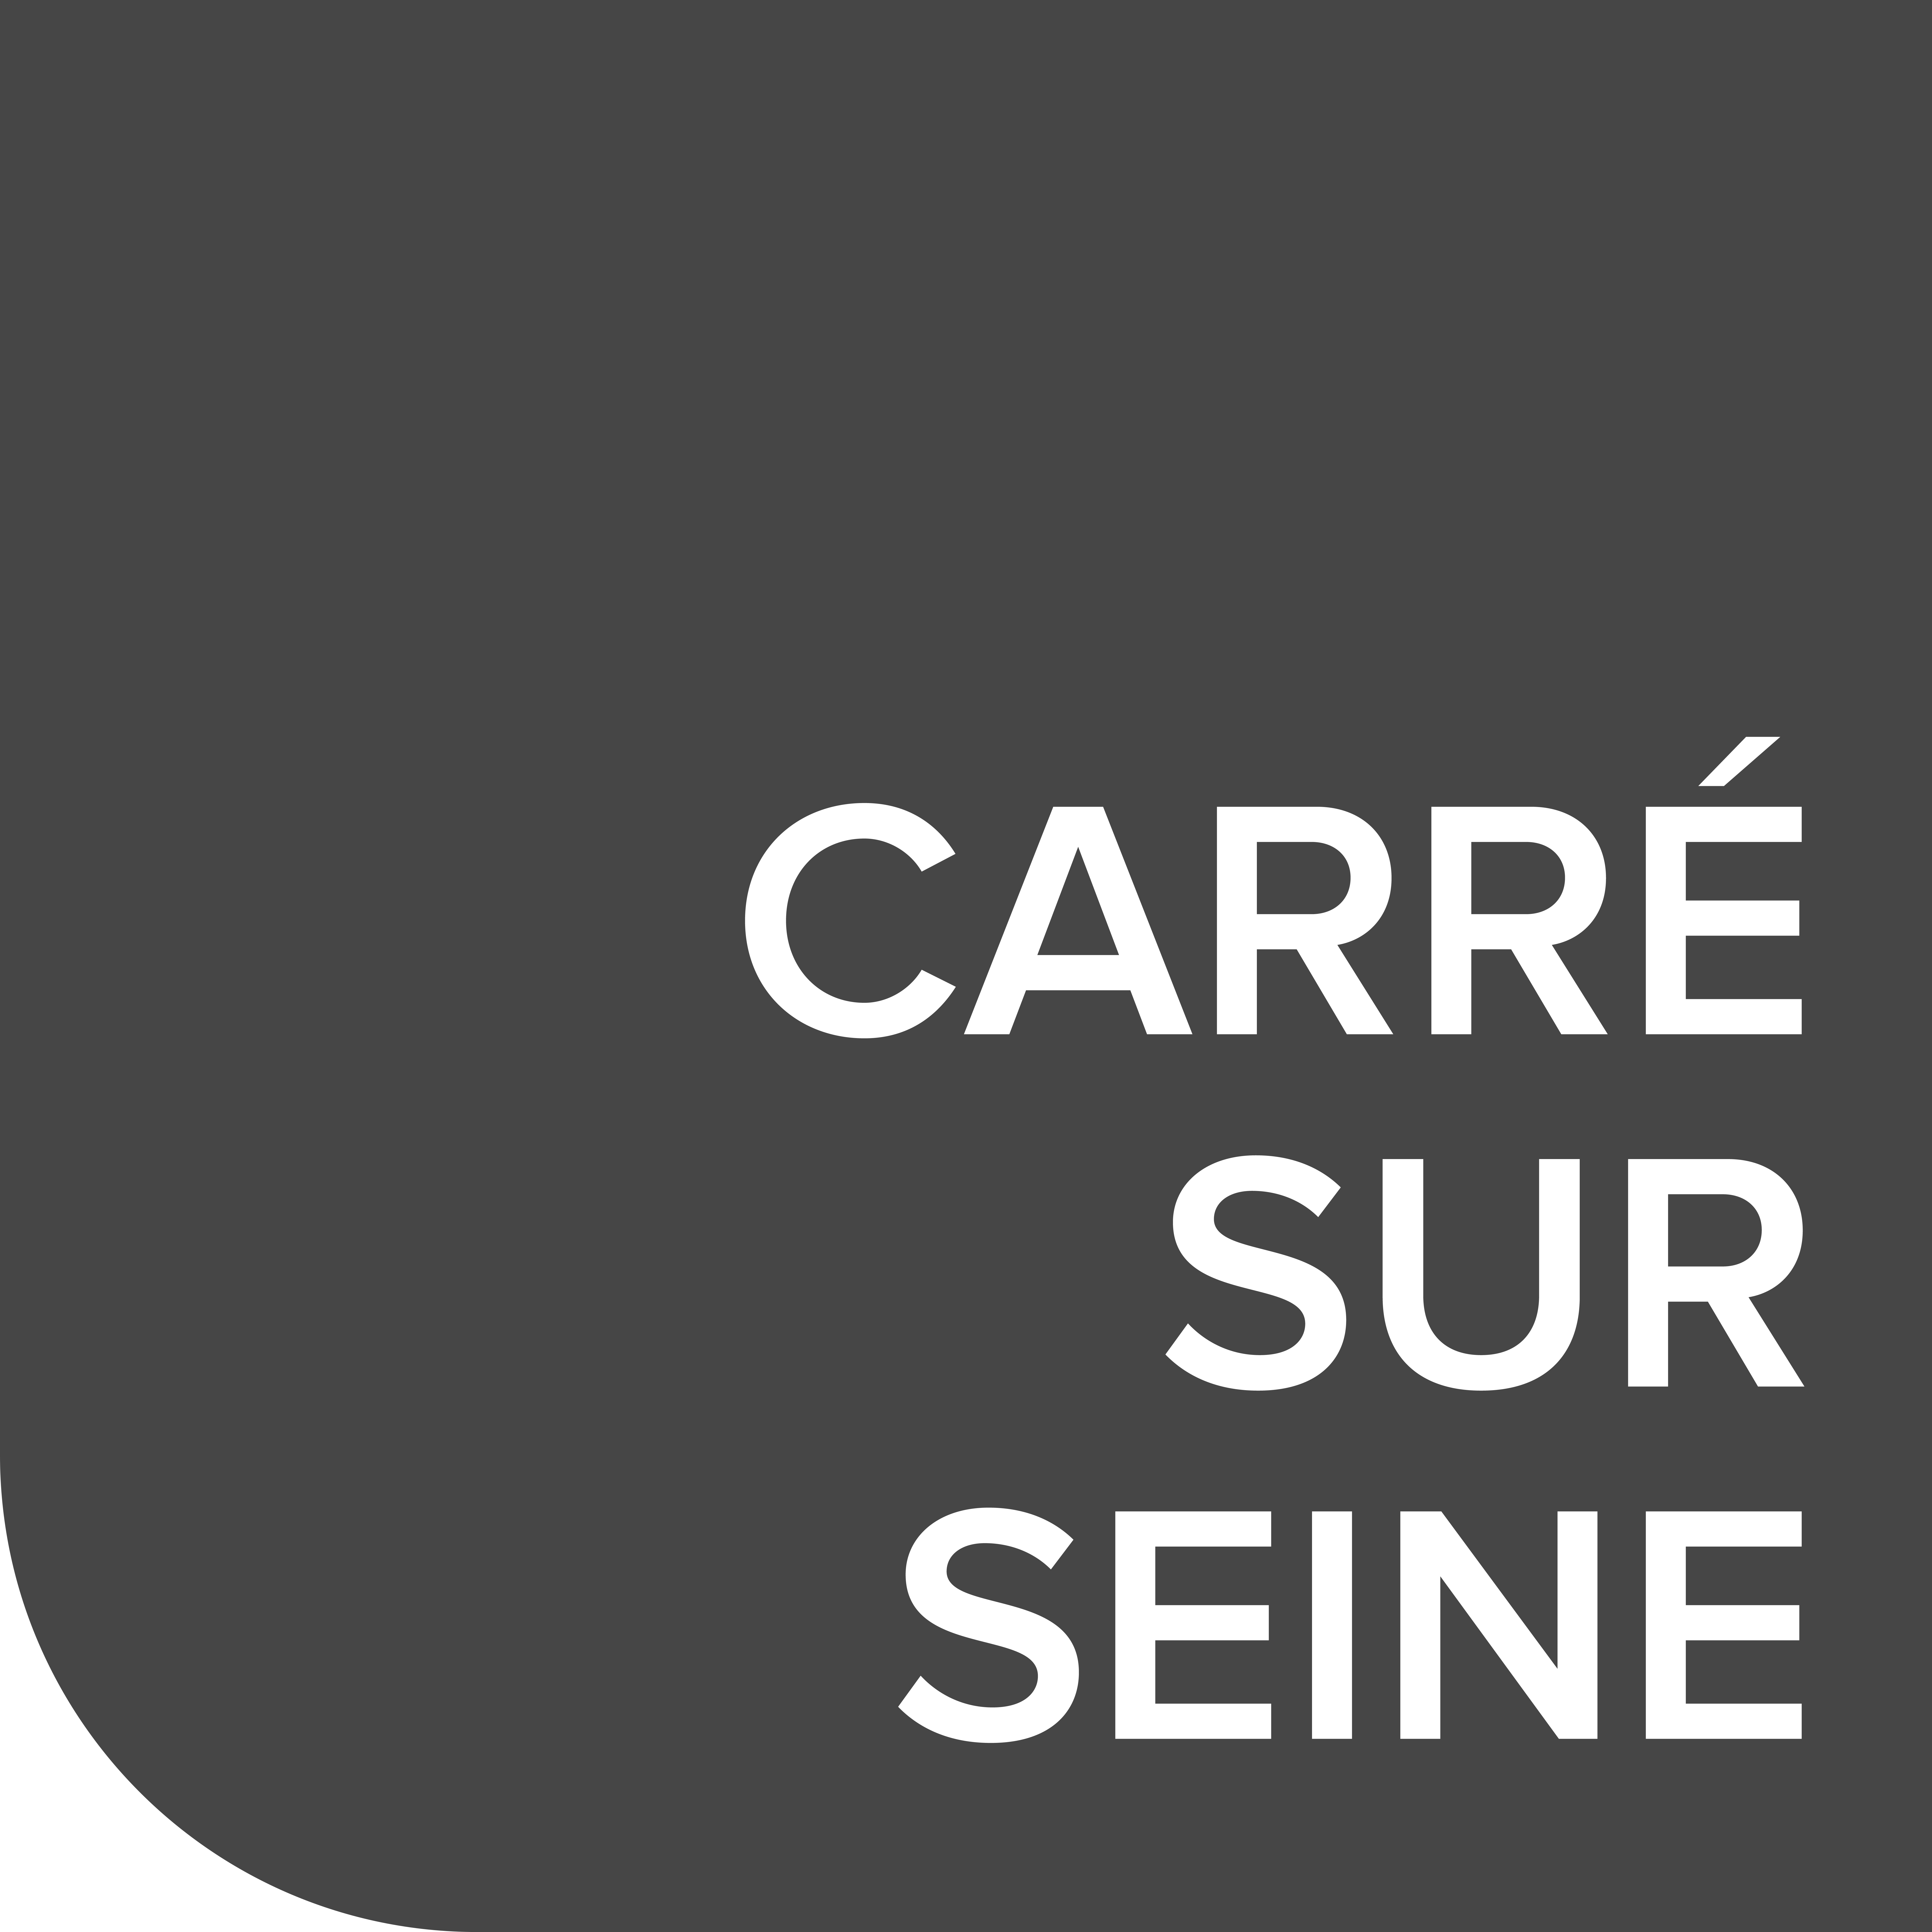 Association - Carré sur Seine